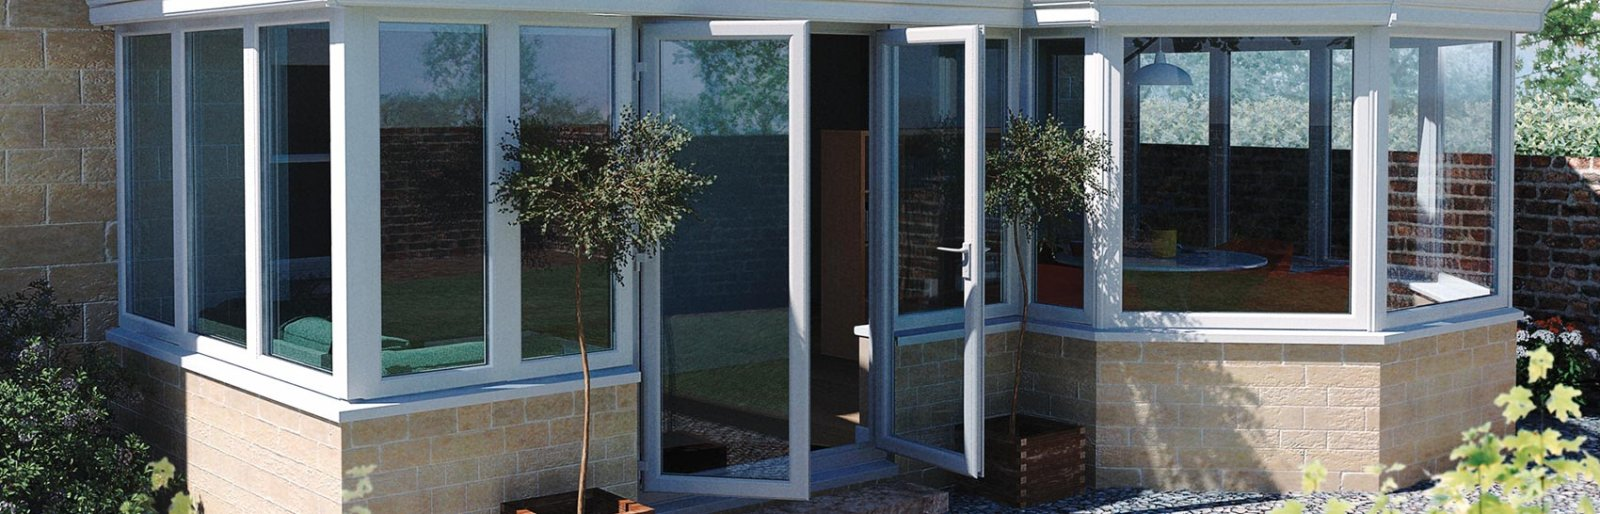 Classic patio and french doors in bristol associated windows white upvc french door for a conservatory rubansaba